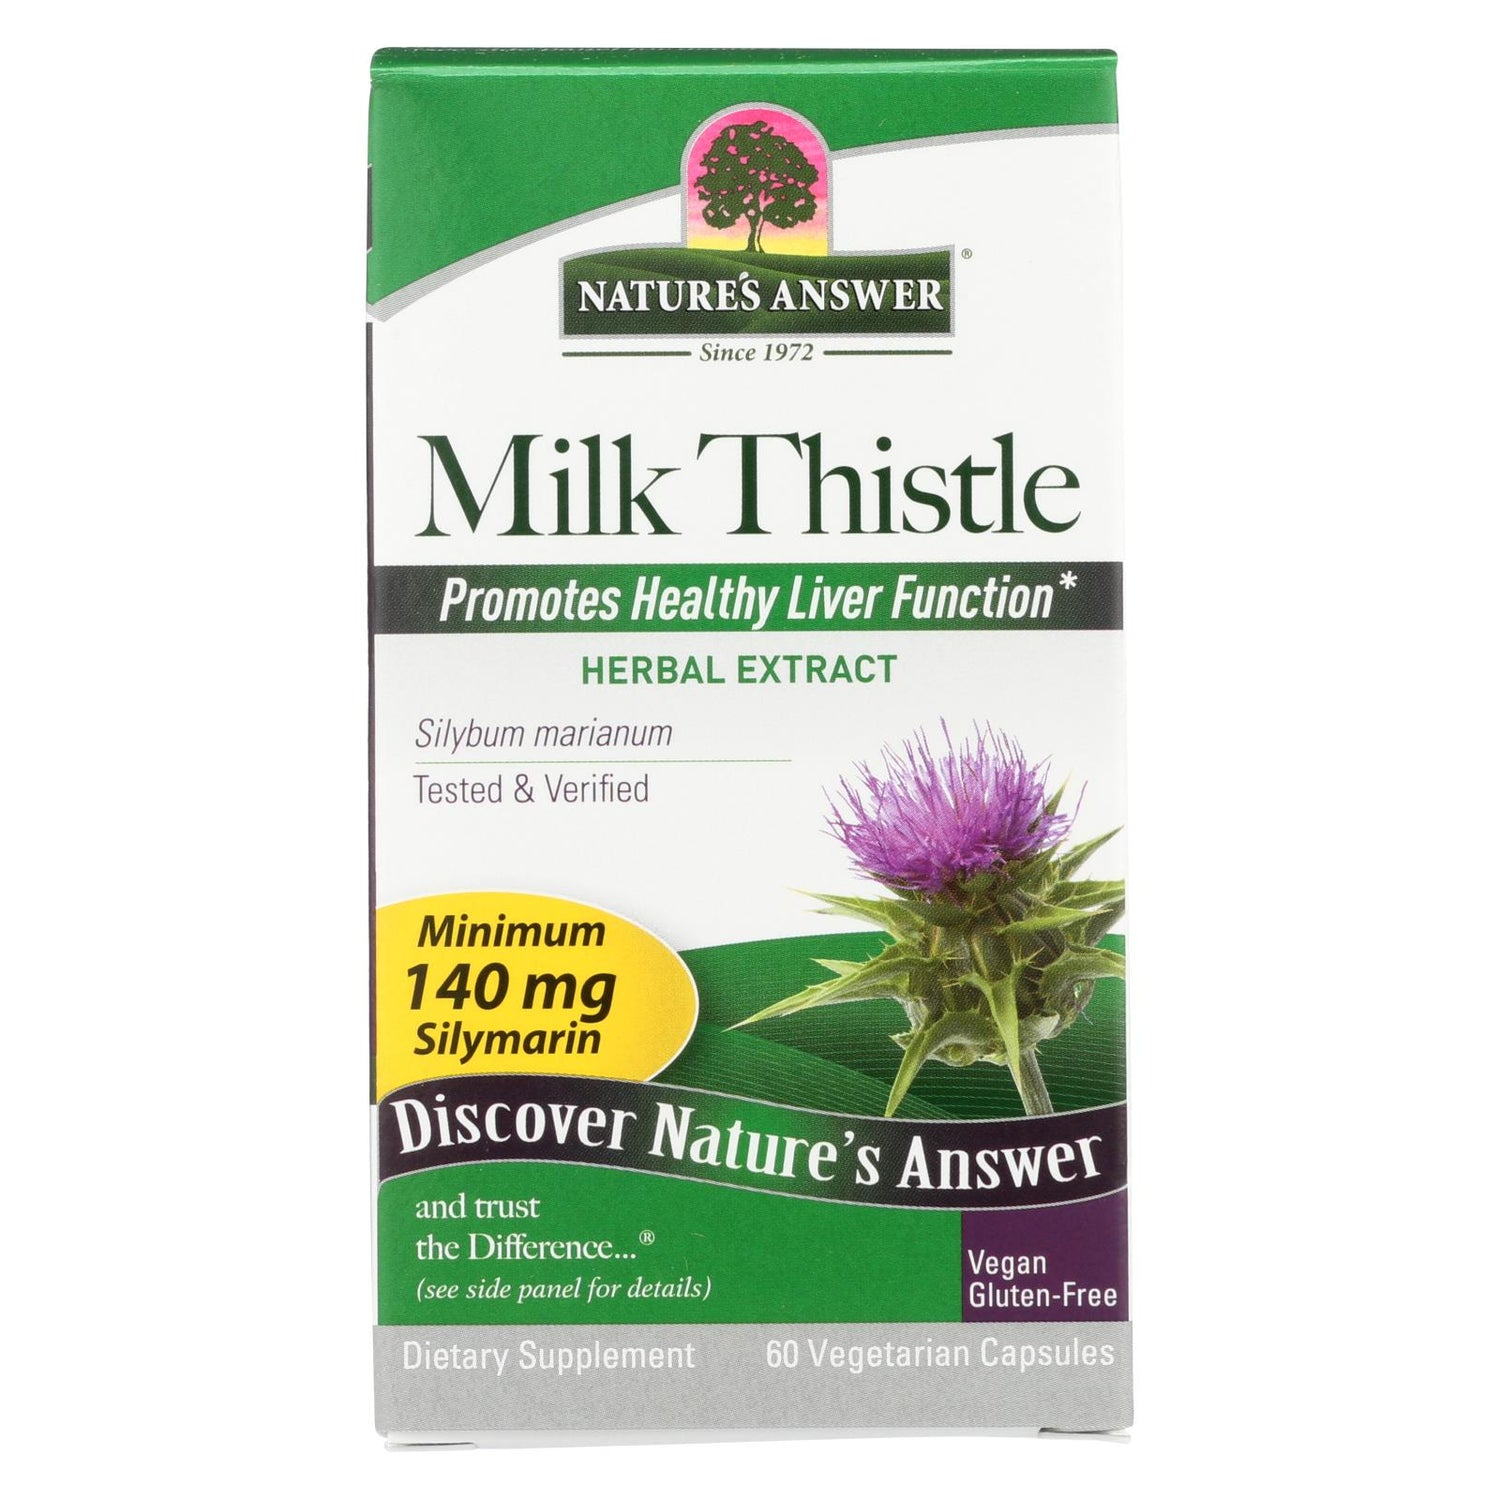 Nature's Answer Milk Thistle Seed Extract - 60 Vegetarian Capsules